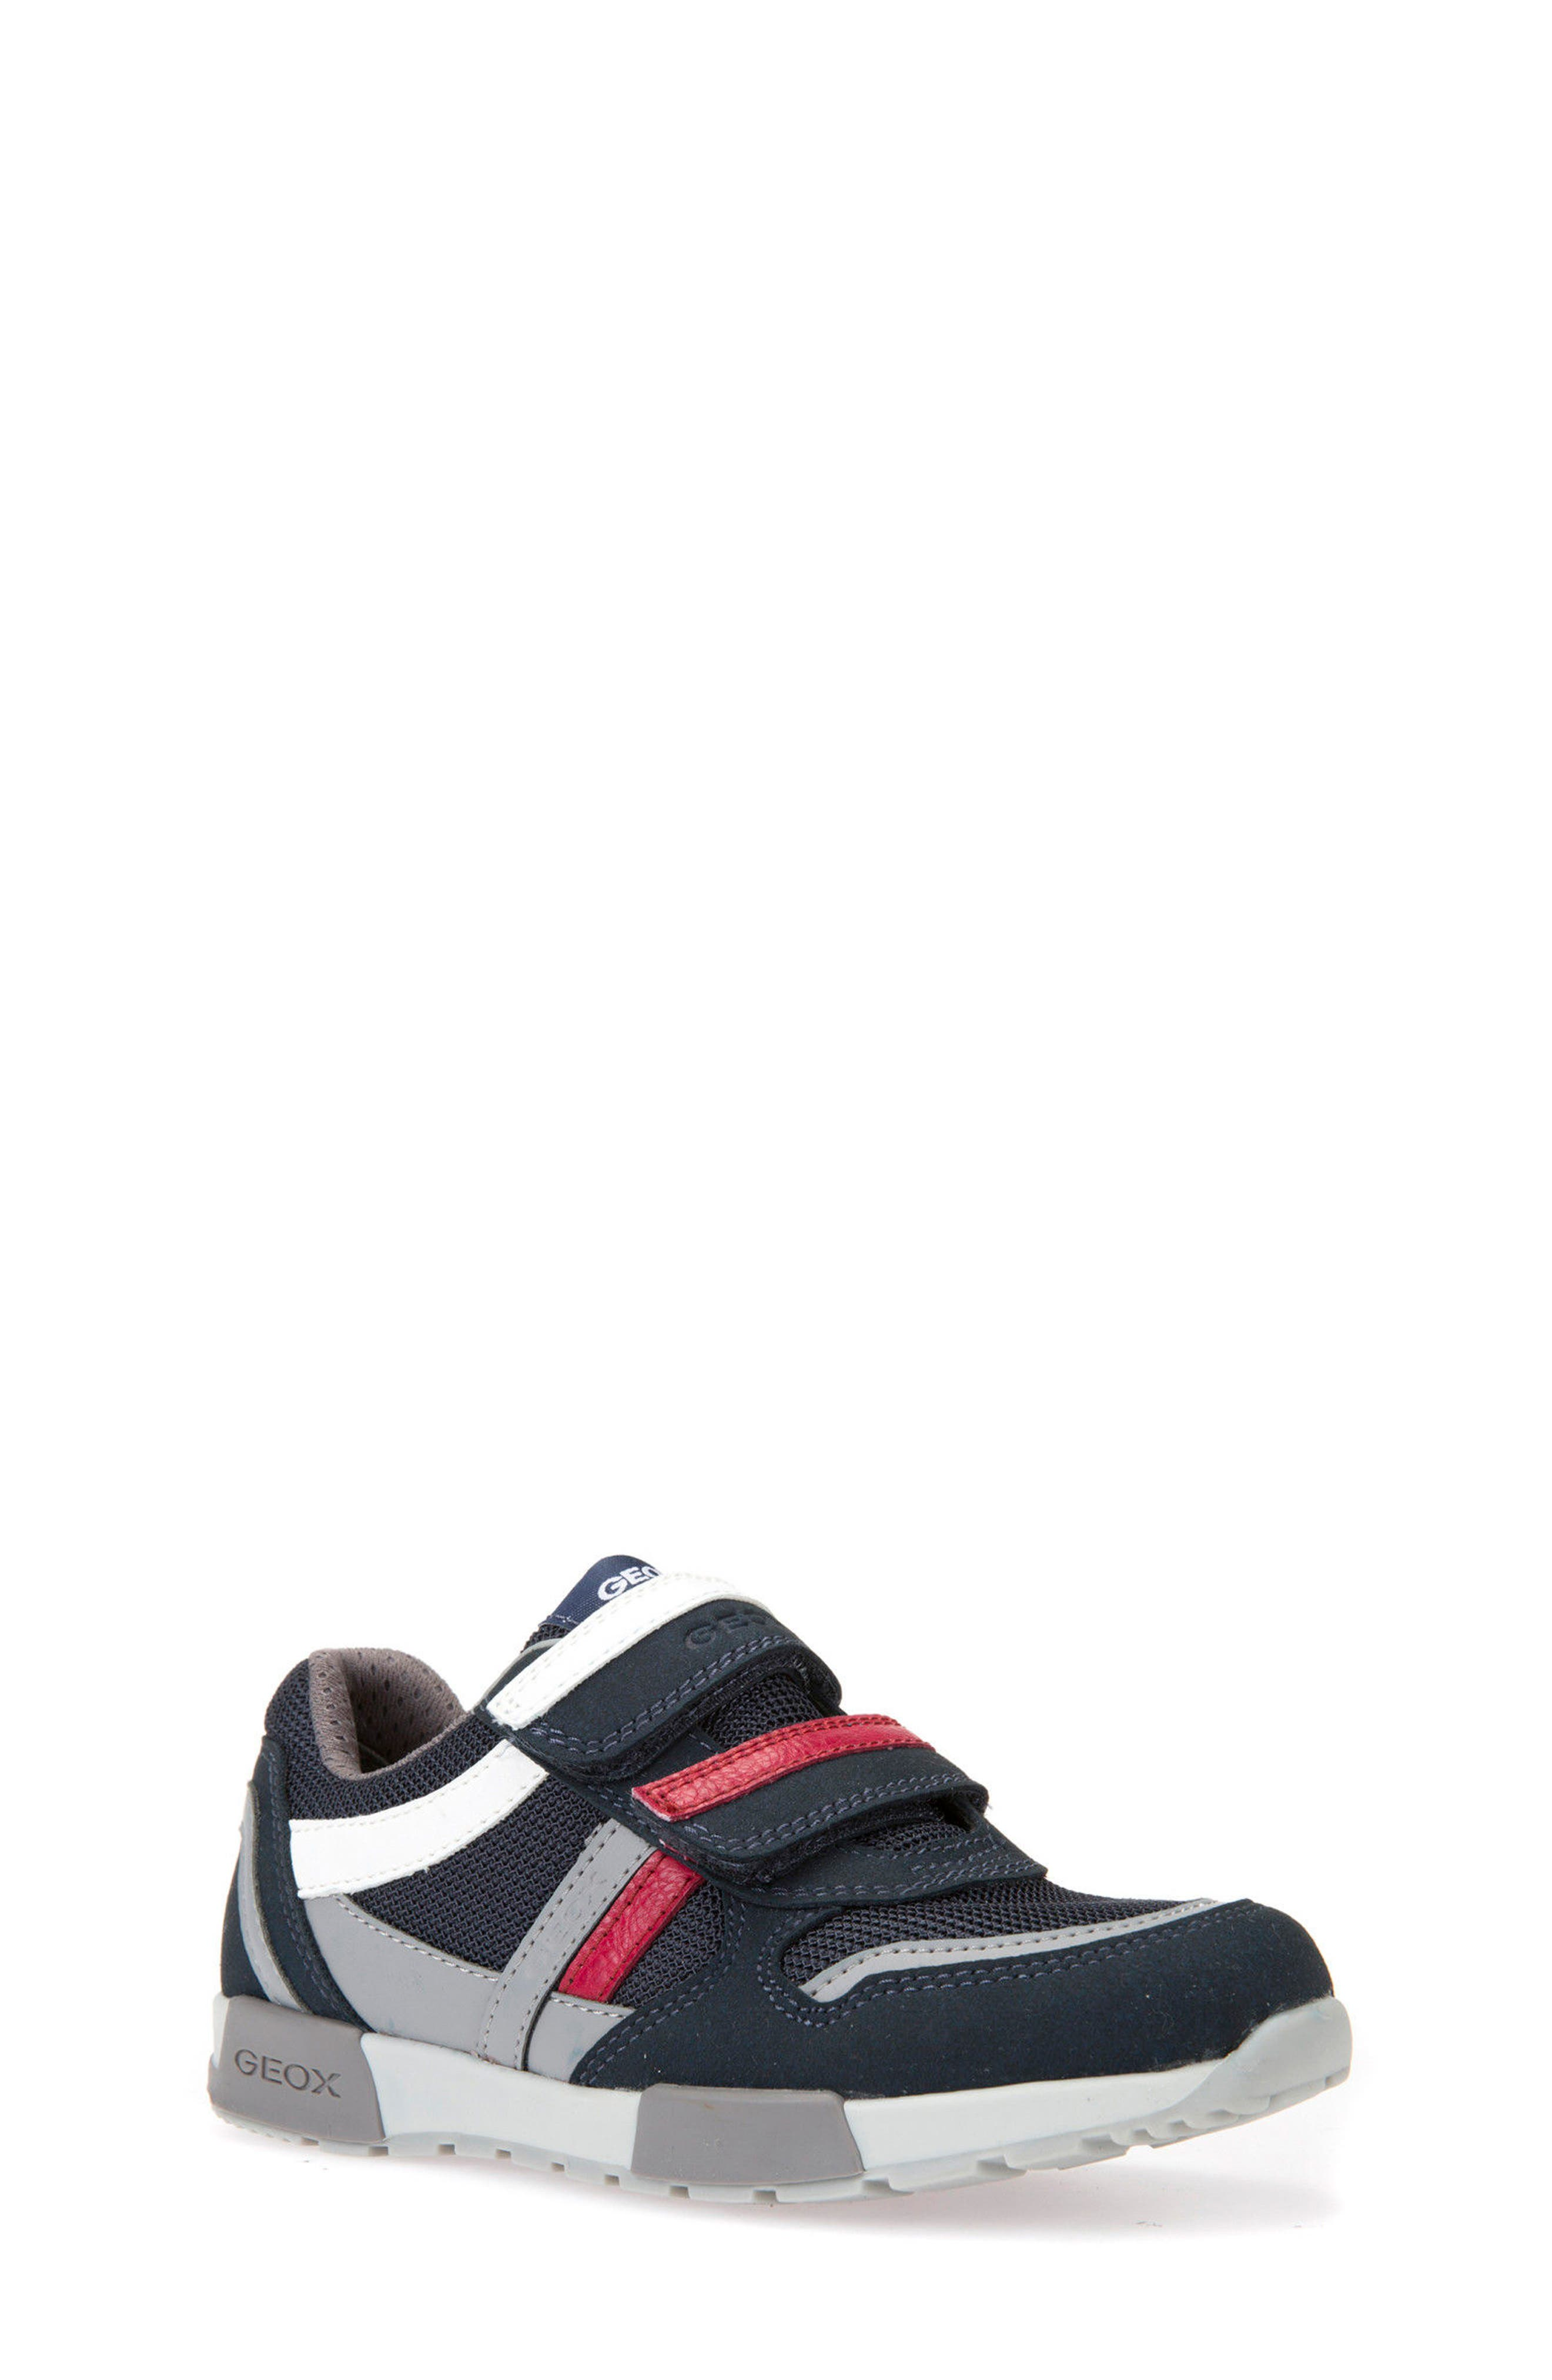 Alfier Stripe Low Top Sneaker,                         Main,                         color, NAVY/ GREY